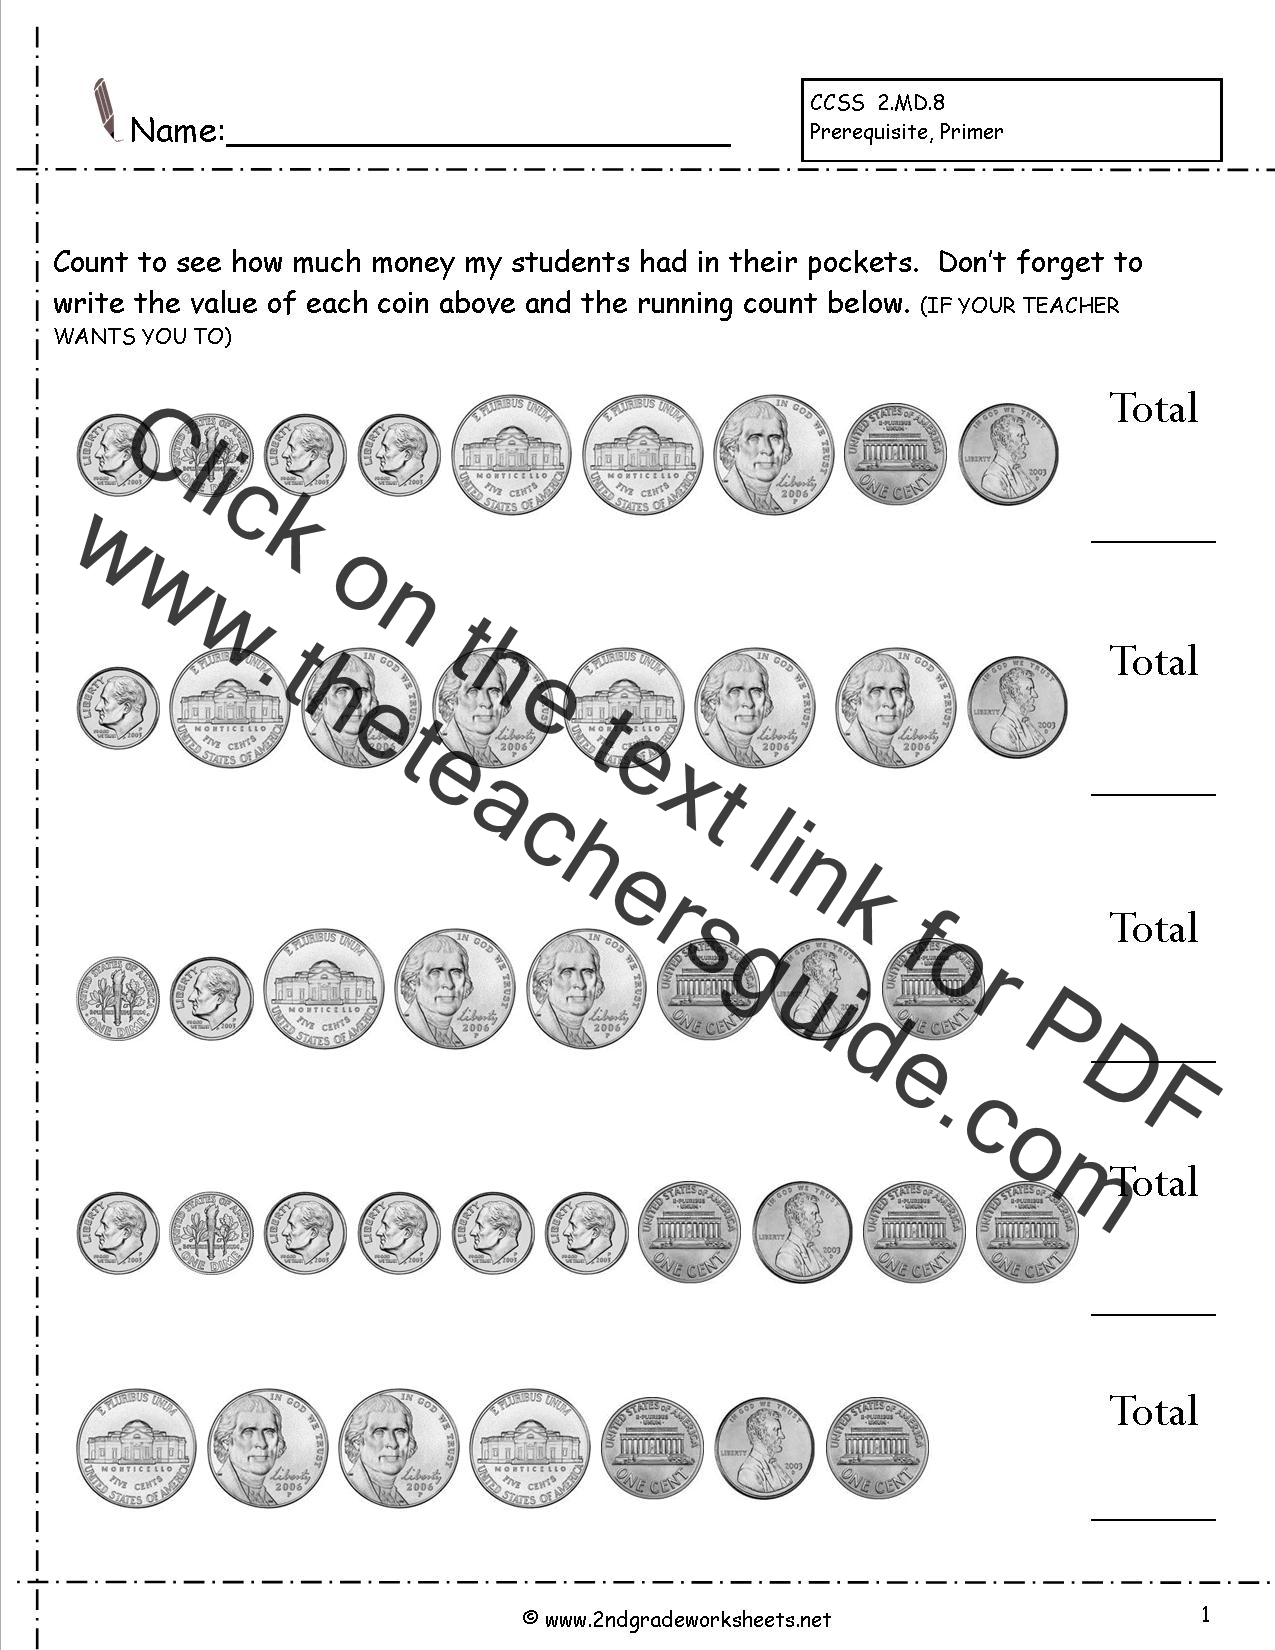 Printables Count Money Worksheet counting coins and money worksheets printouts worksheet